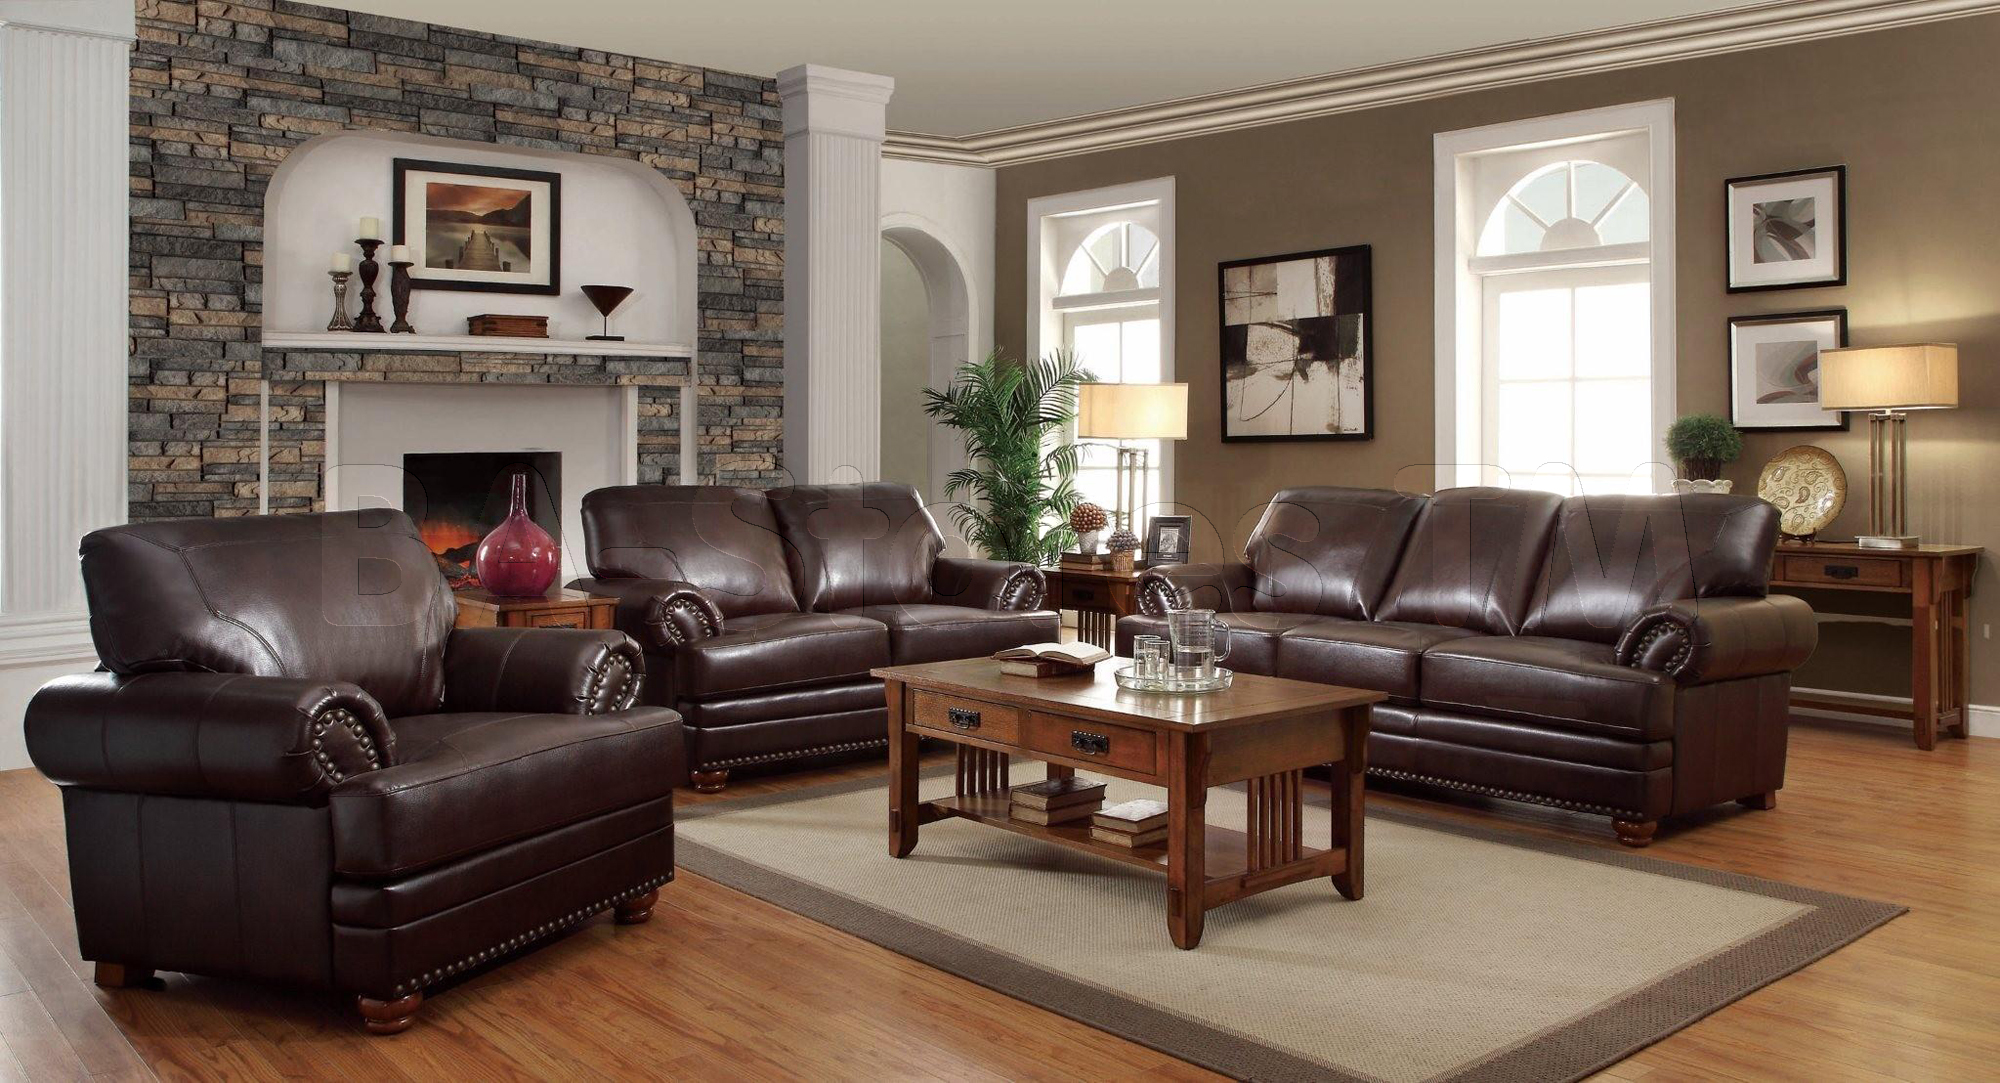 Captivating Front Room Furnishings For Living Room Ideas With Front Room Furnishings Outlet